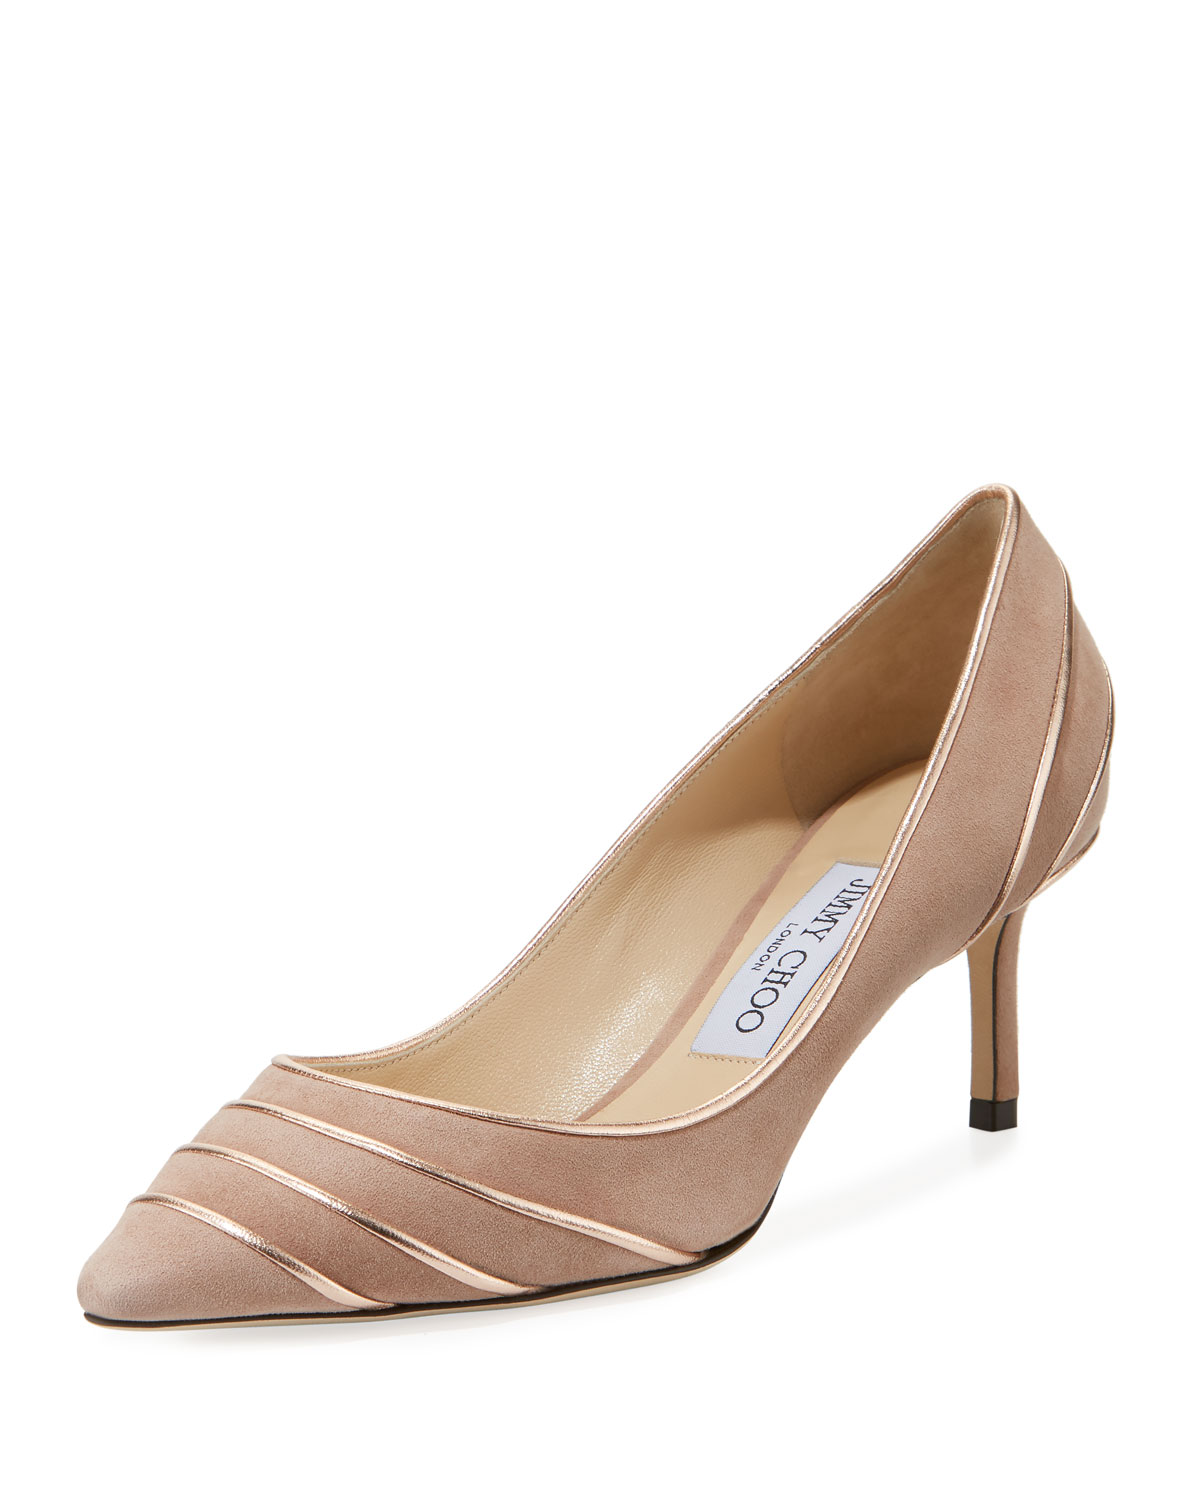 2b4ad2f0faa2 Jimmy Choo Romy 60mm Metallic Leather-Piped Suede Pumps